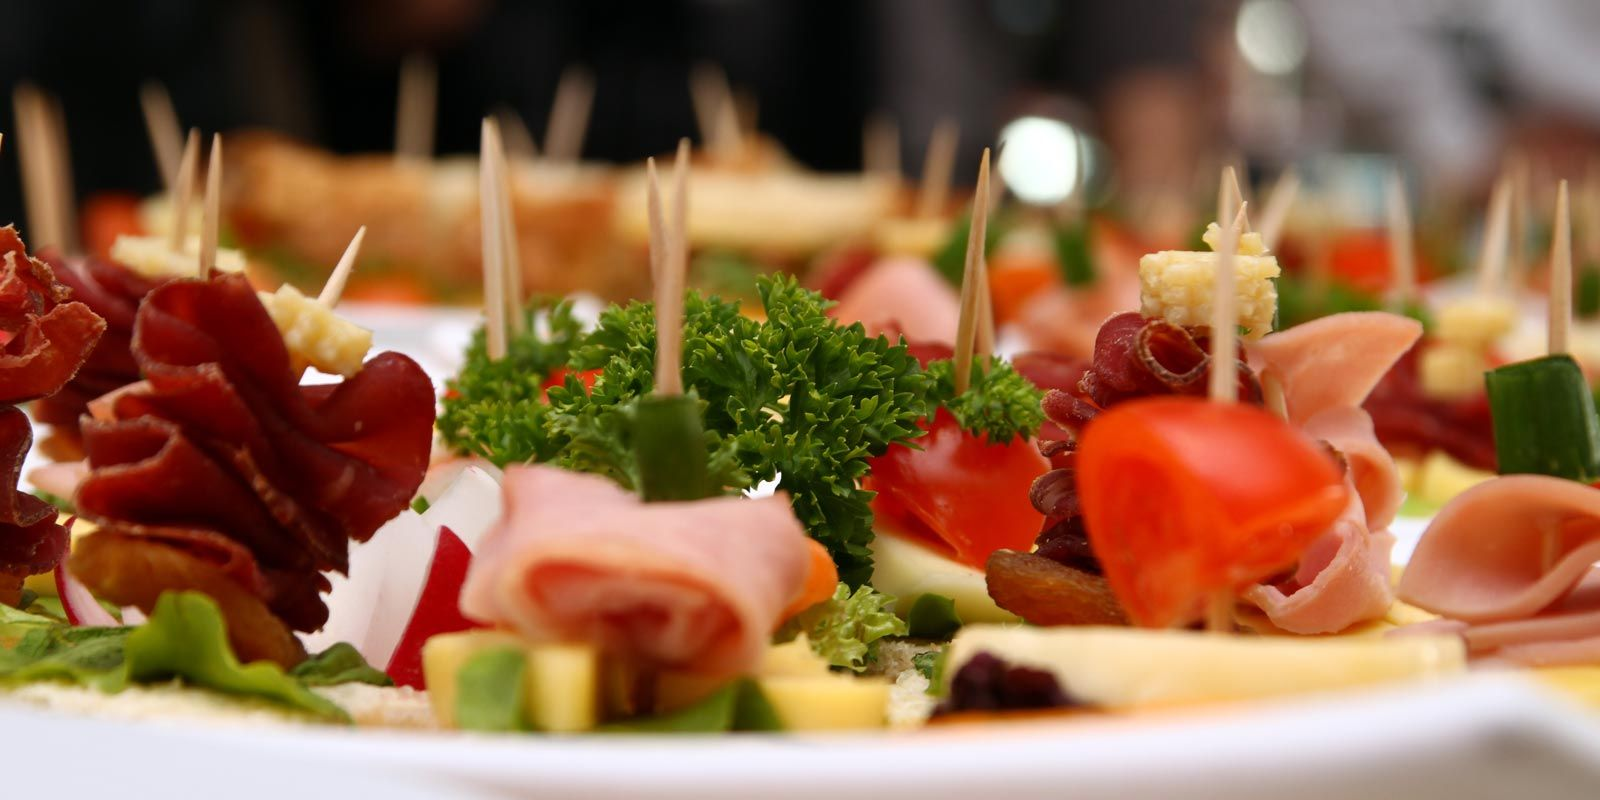 Best Caterers In India Catering Services In Delhi Best Caterers Delhi Wedding Food Catering Food